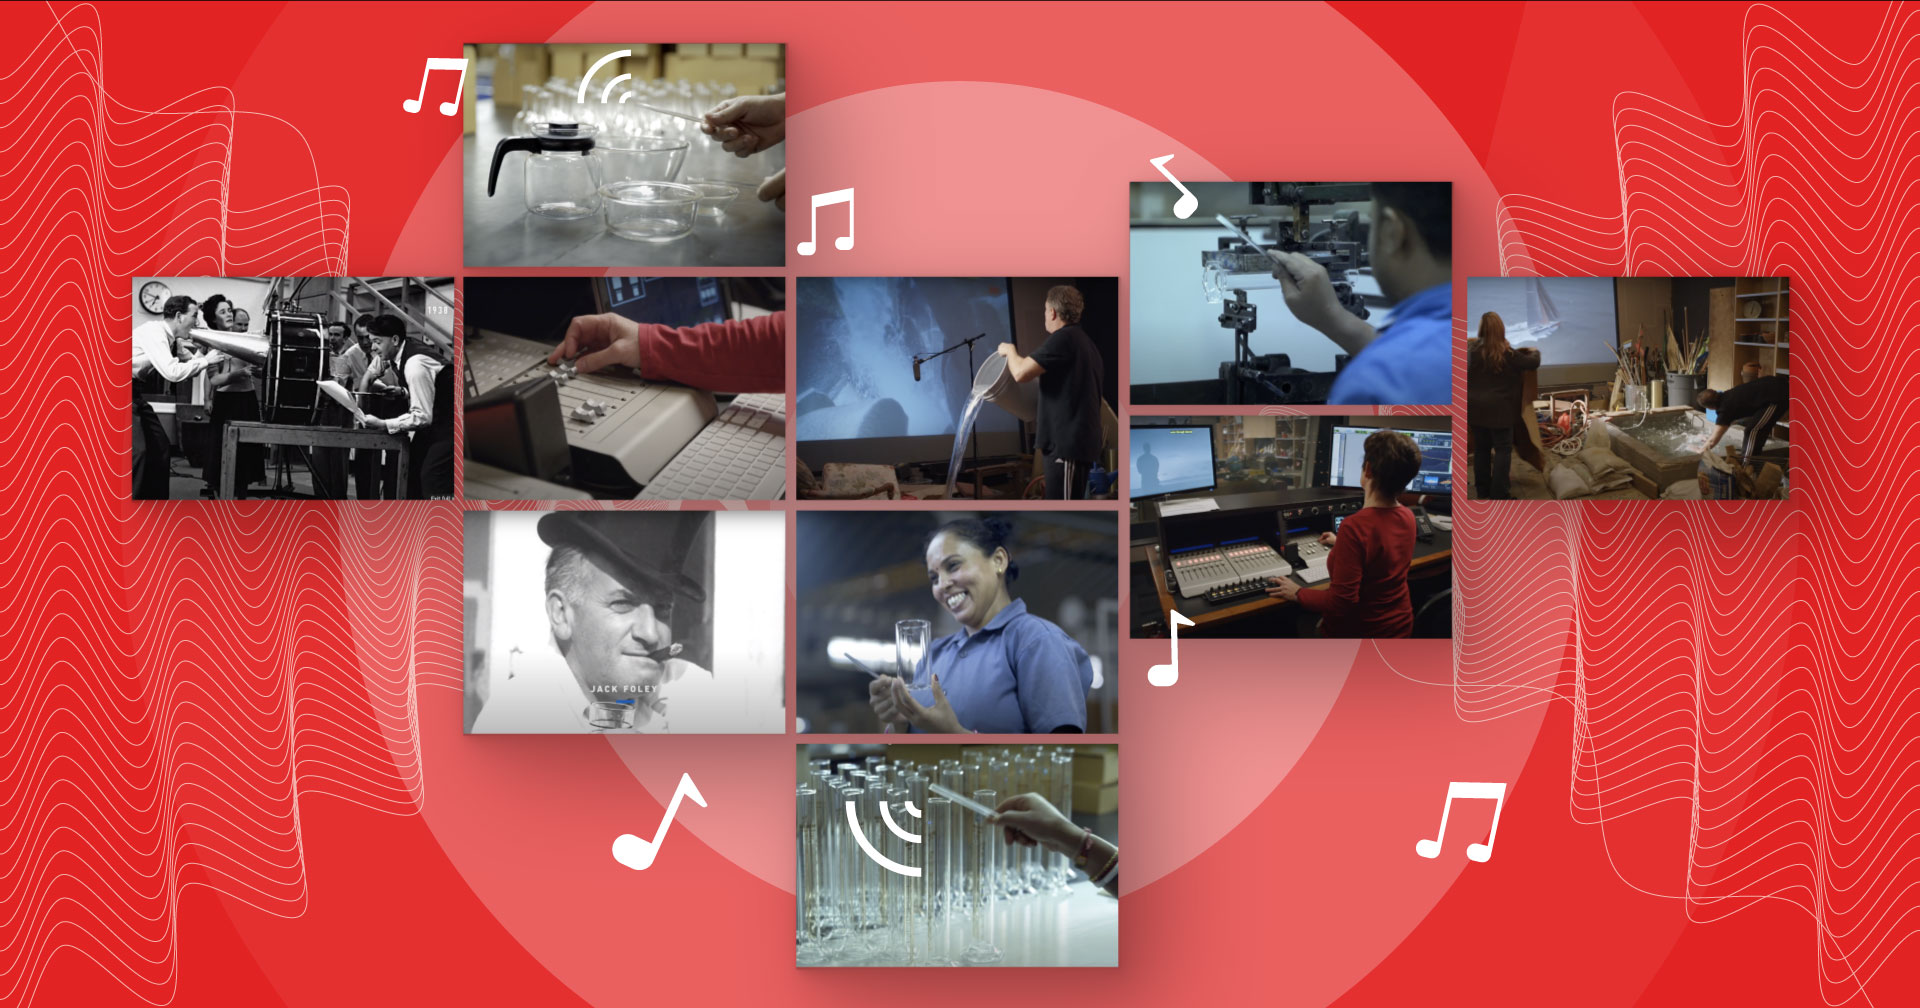 Why natural sound plays a big role for brands?